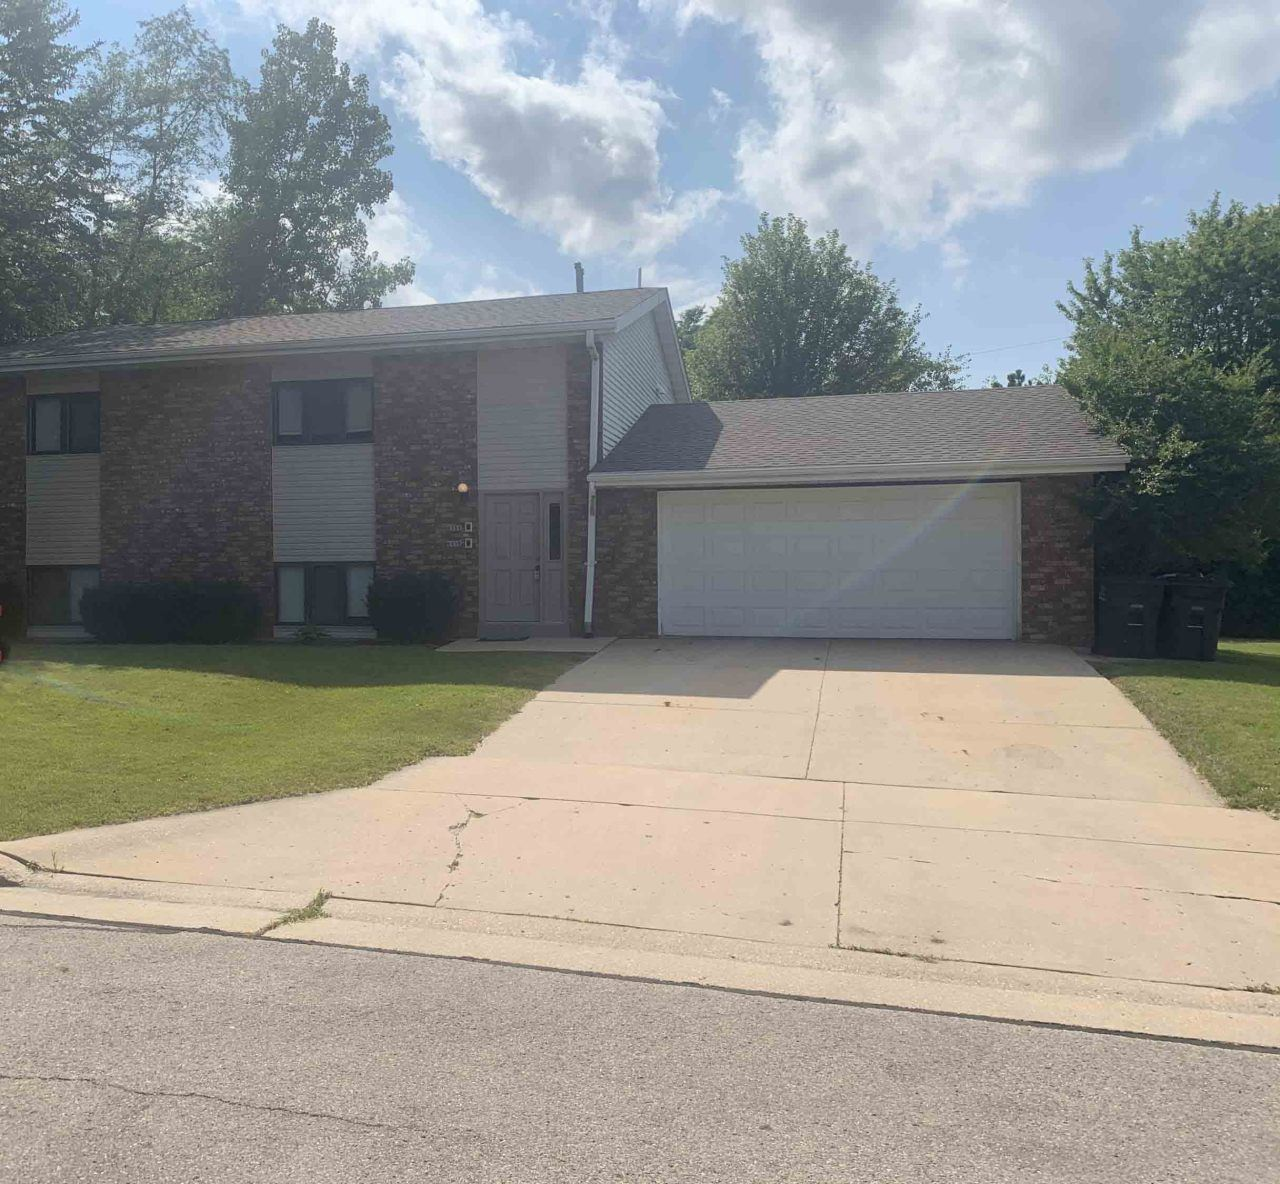 6155 S 42ND ST #6157, Greenfield, WI 53221 - #: 1703401